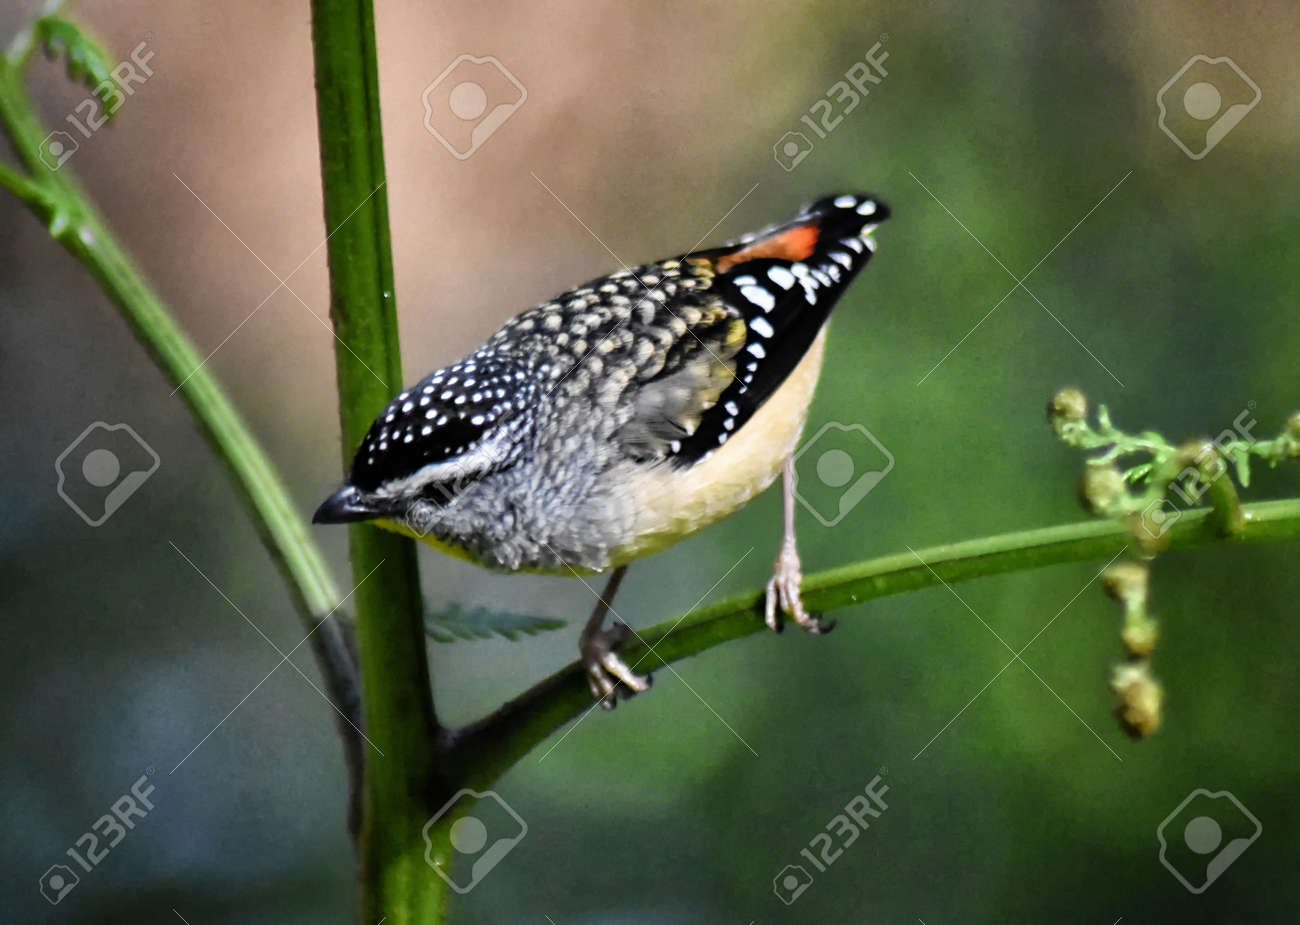 A close up of a Spotted Pardalote (Pardalotus punctatus) clinging to a fern stem Stock Photo - 93208329